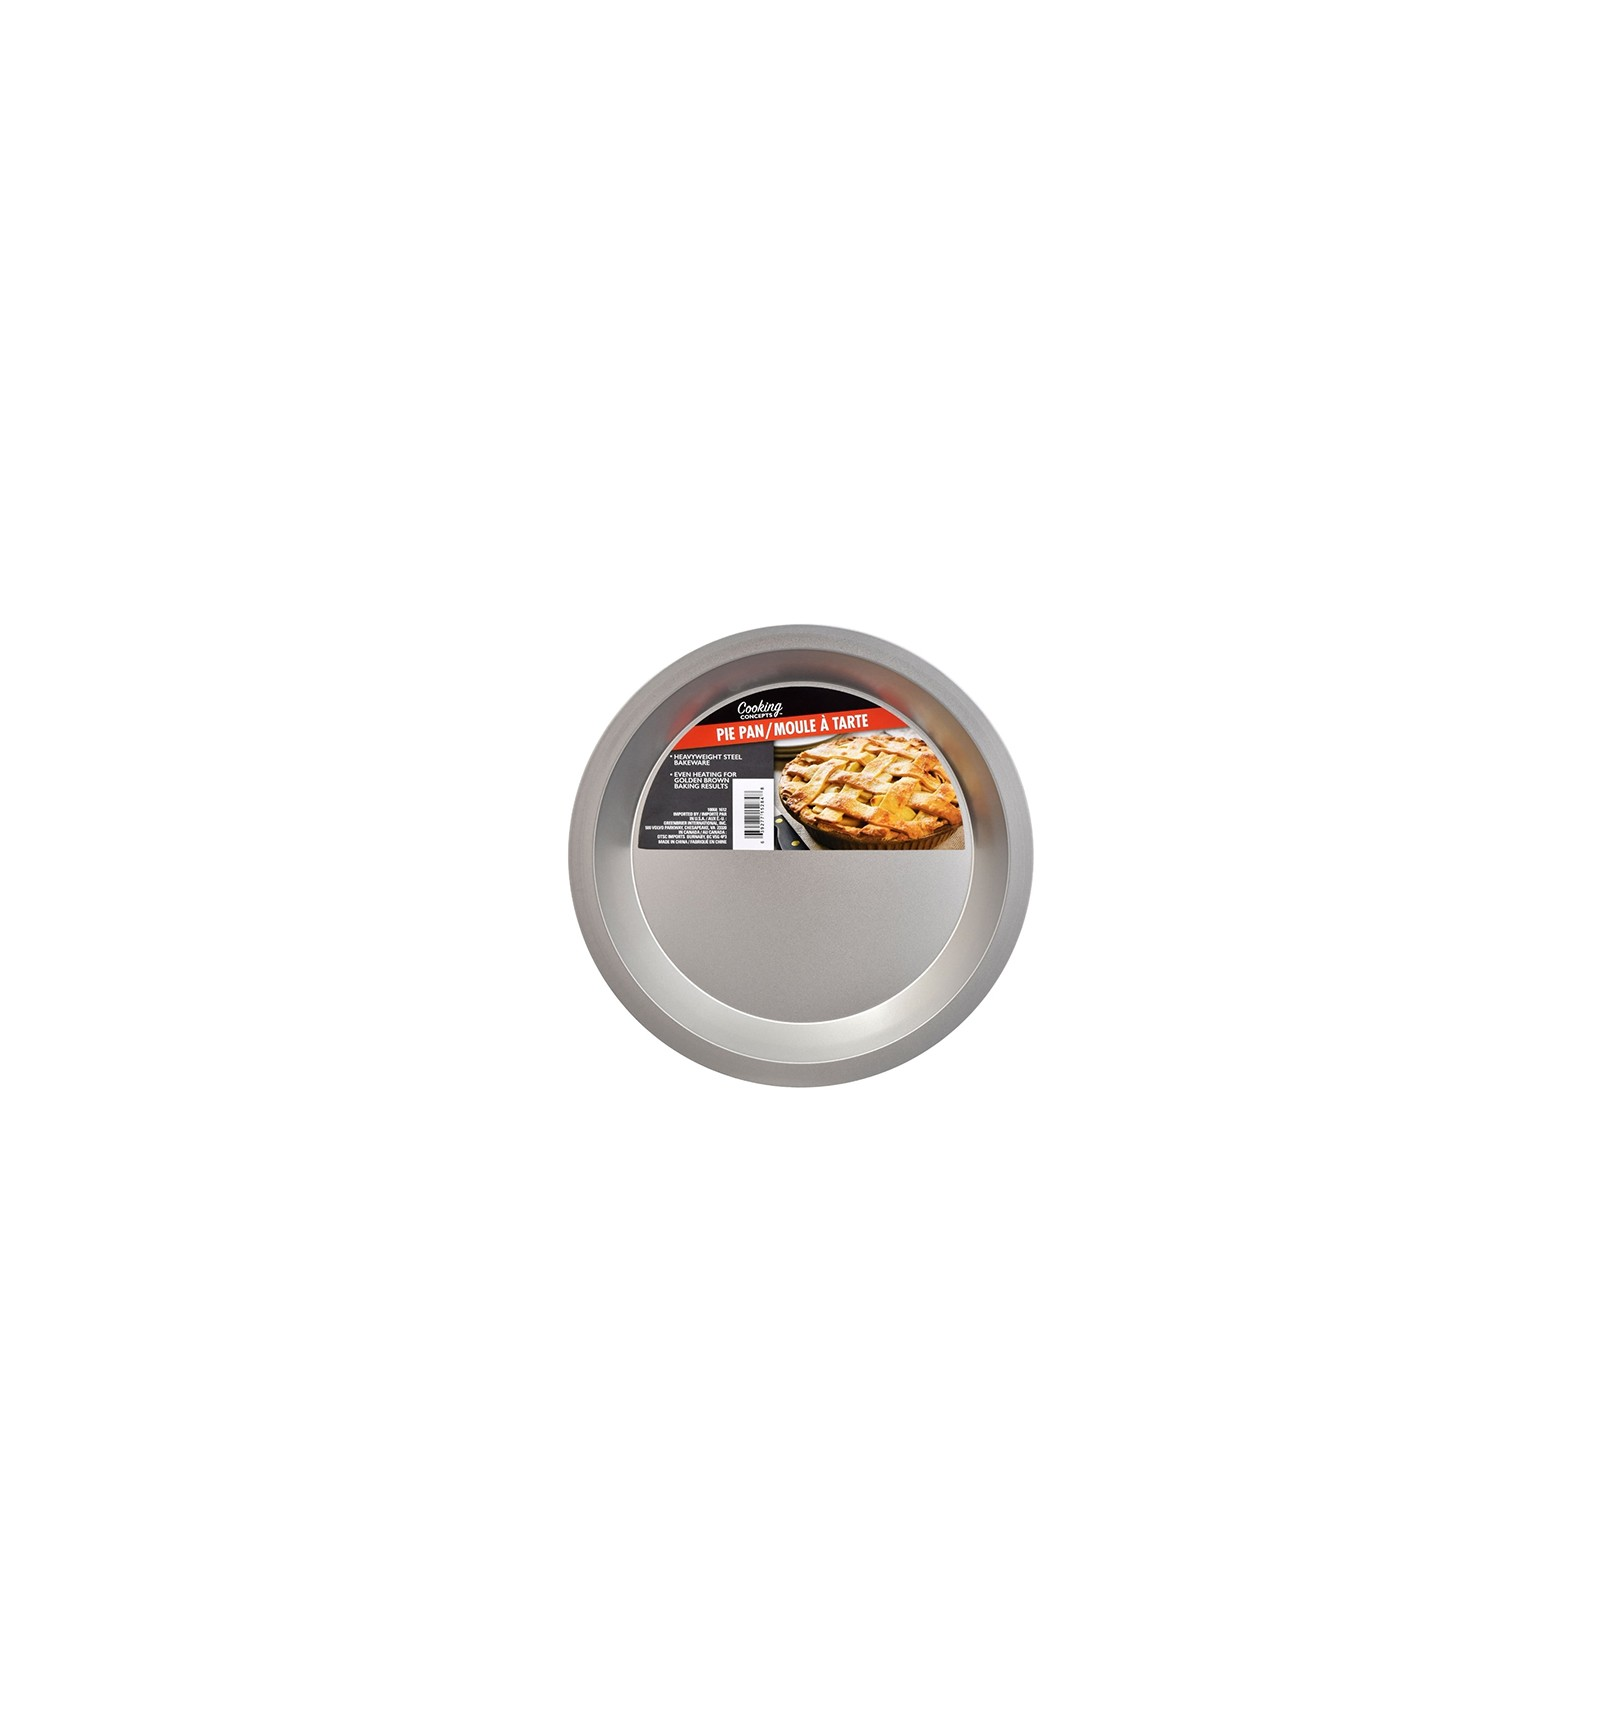 Brand New Cooking Concepts Pie Pans set of 2 9 in